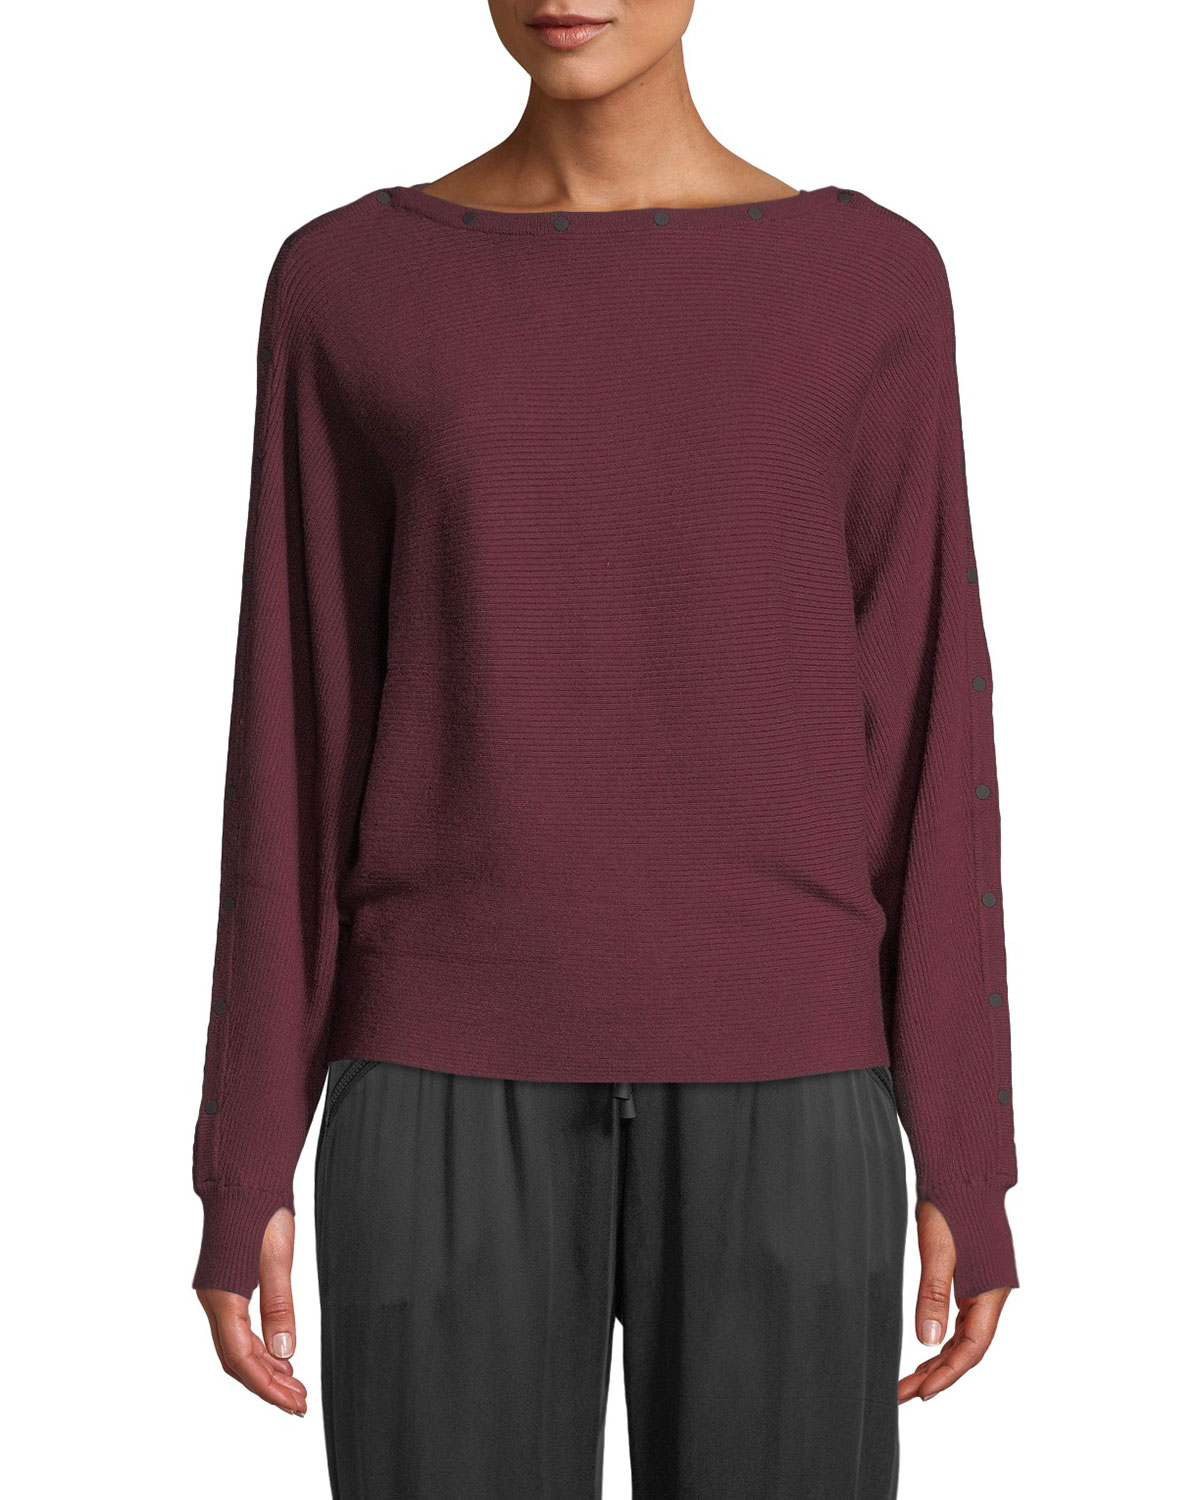 BLANC NOIR Portola Sporty Pullover Sweater in White